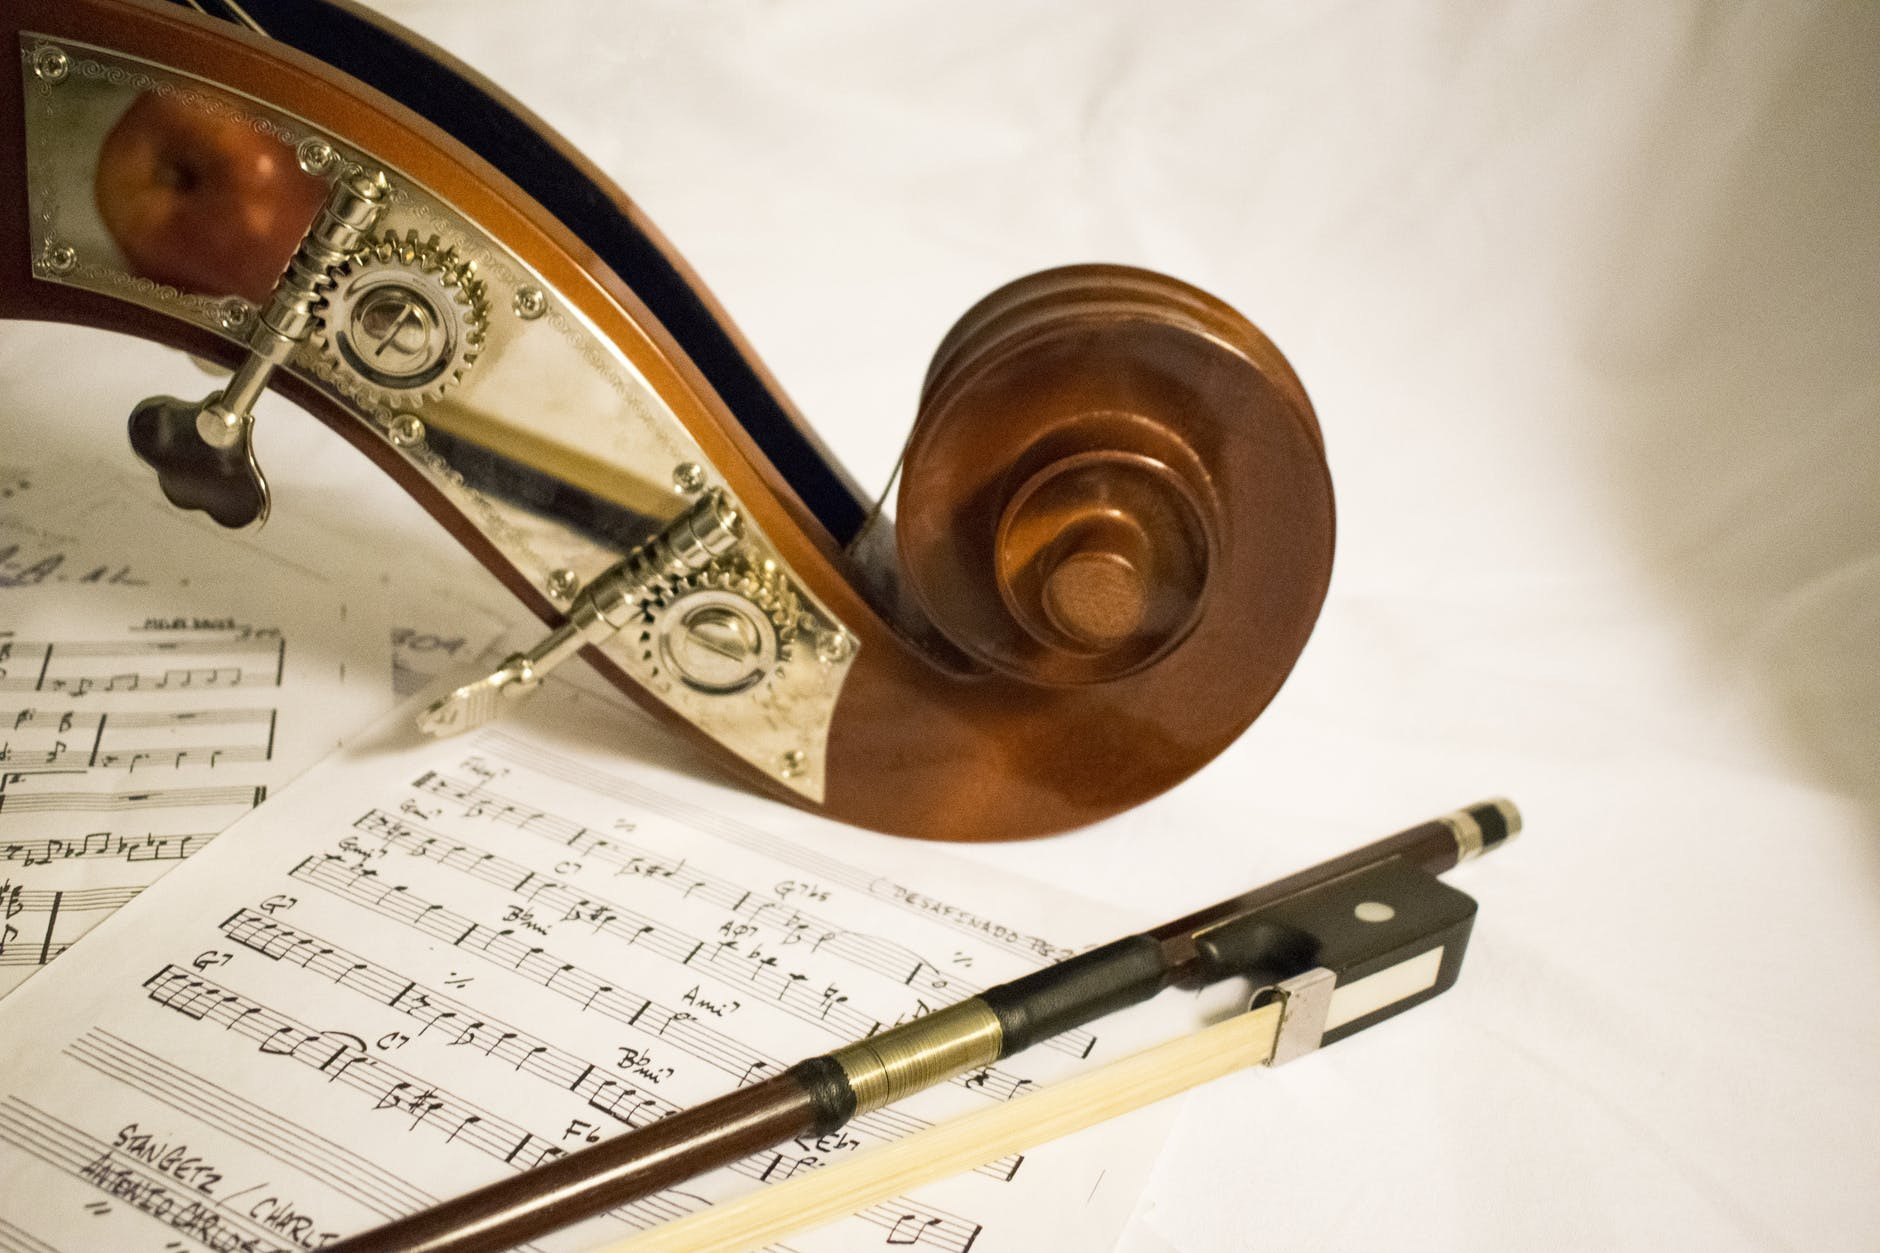 Sheet music and cello for musician's mechanical royalties